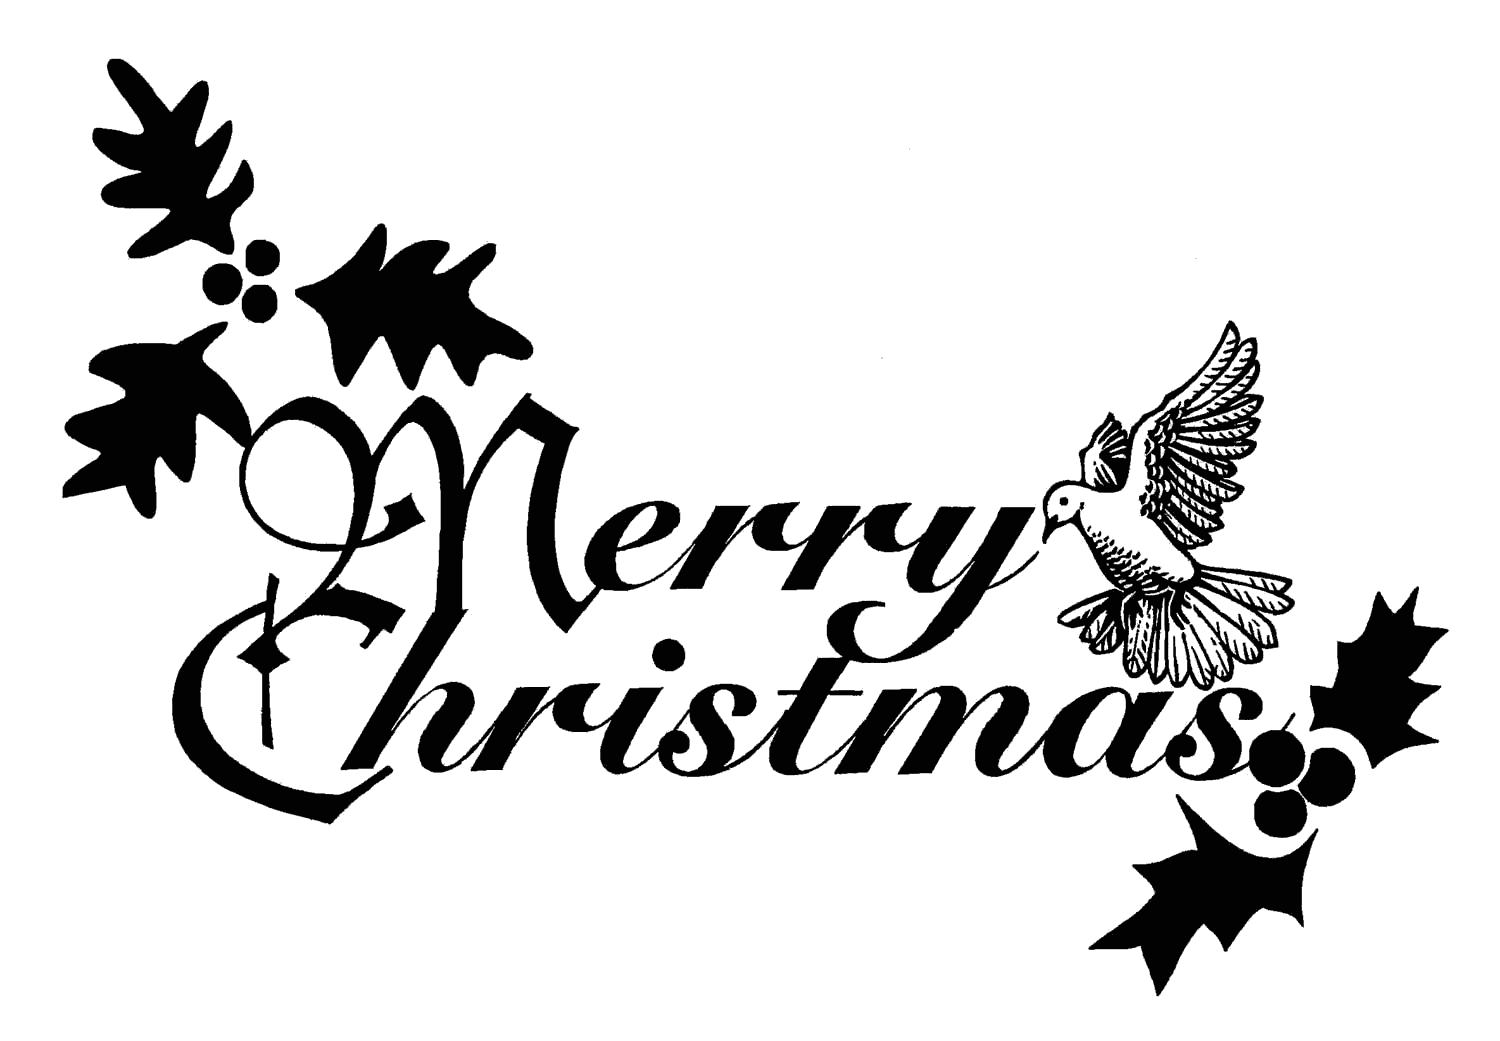 Improve Christmas Clipart Free Christmas Clipart Christmas Images